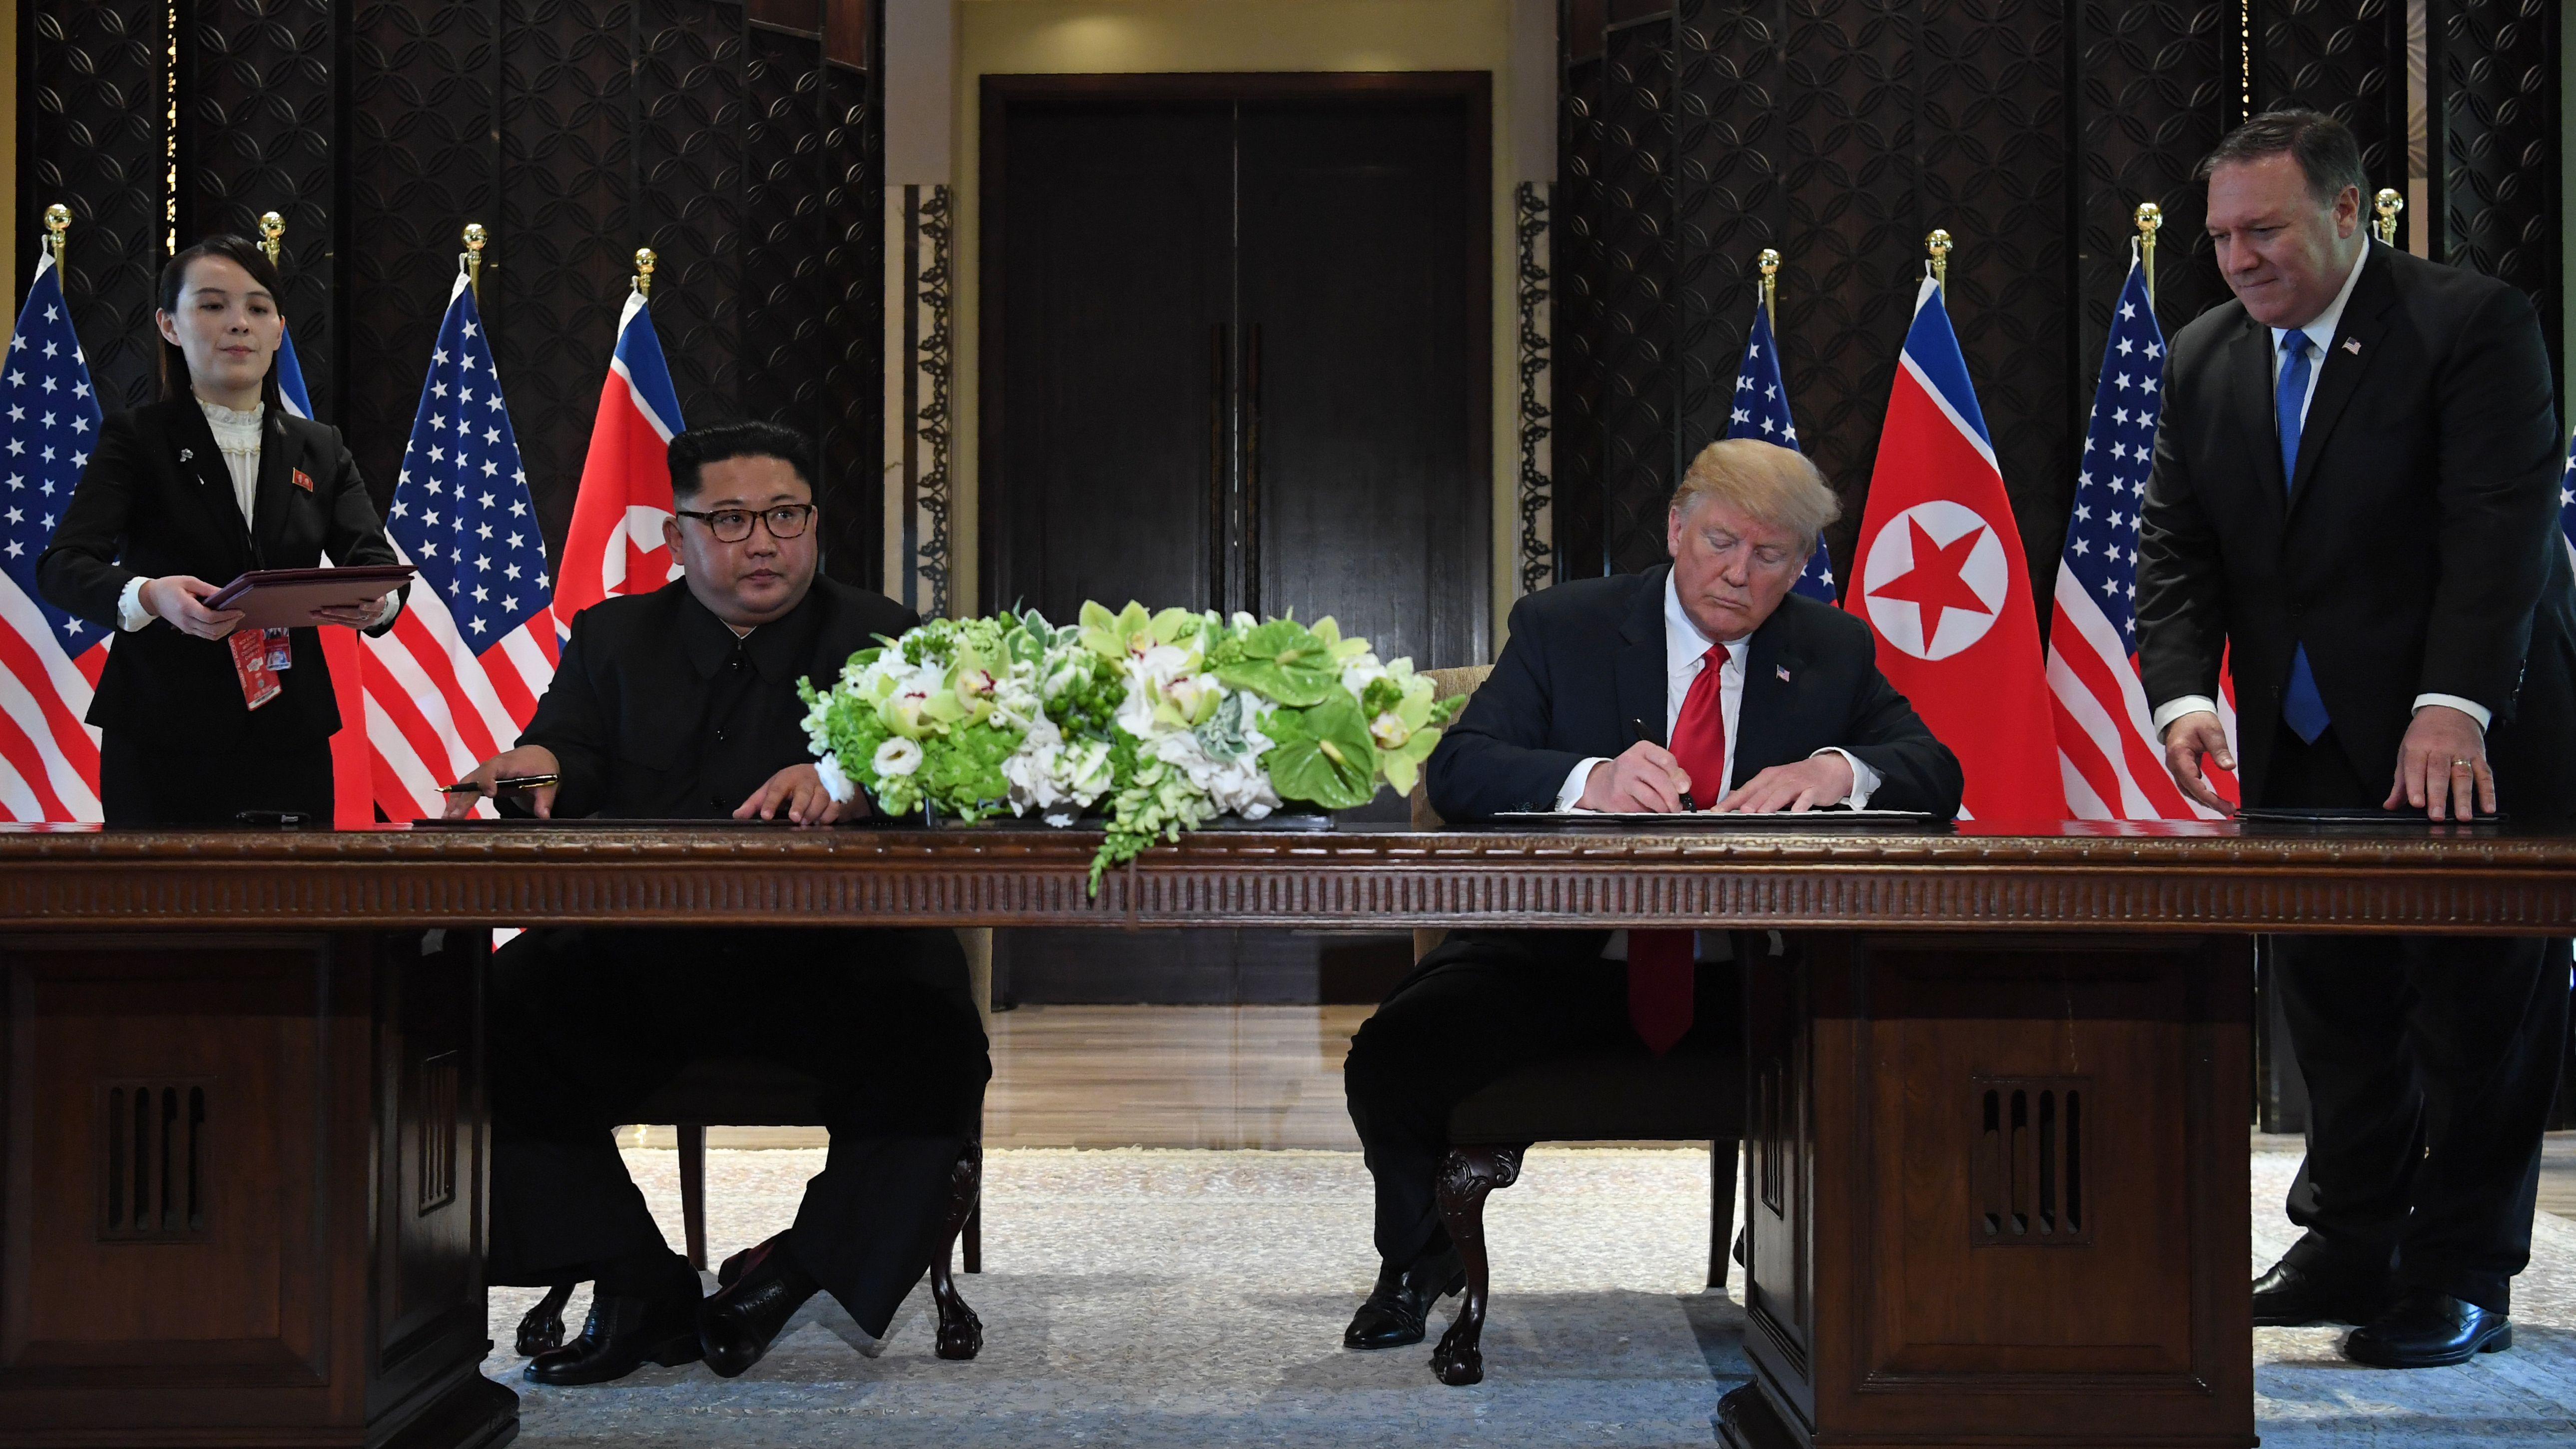 Kim Jong-un and Donald Trump sit at a table and sign the joint statement, with Mike Pompeo standing over Trump.